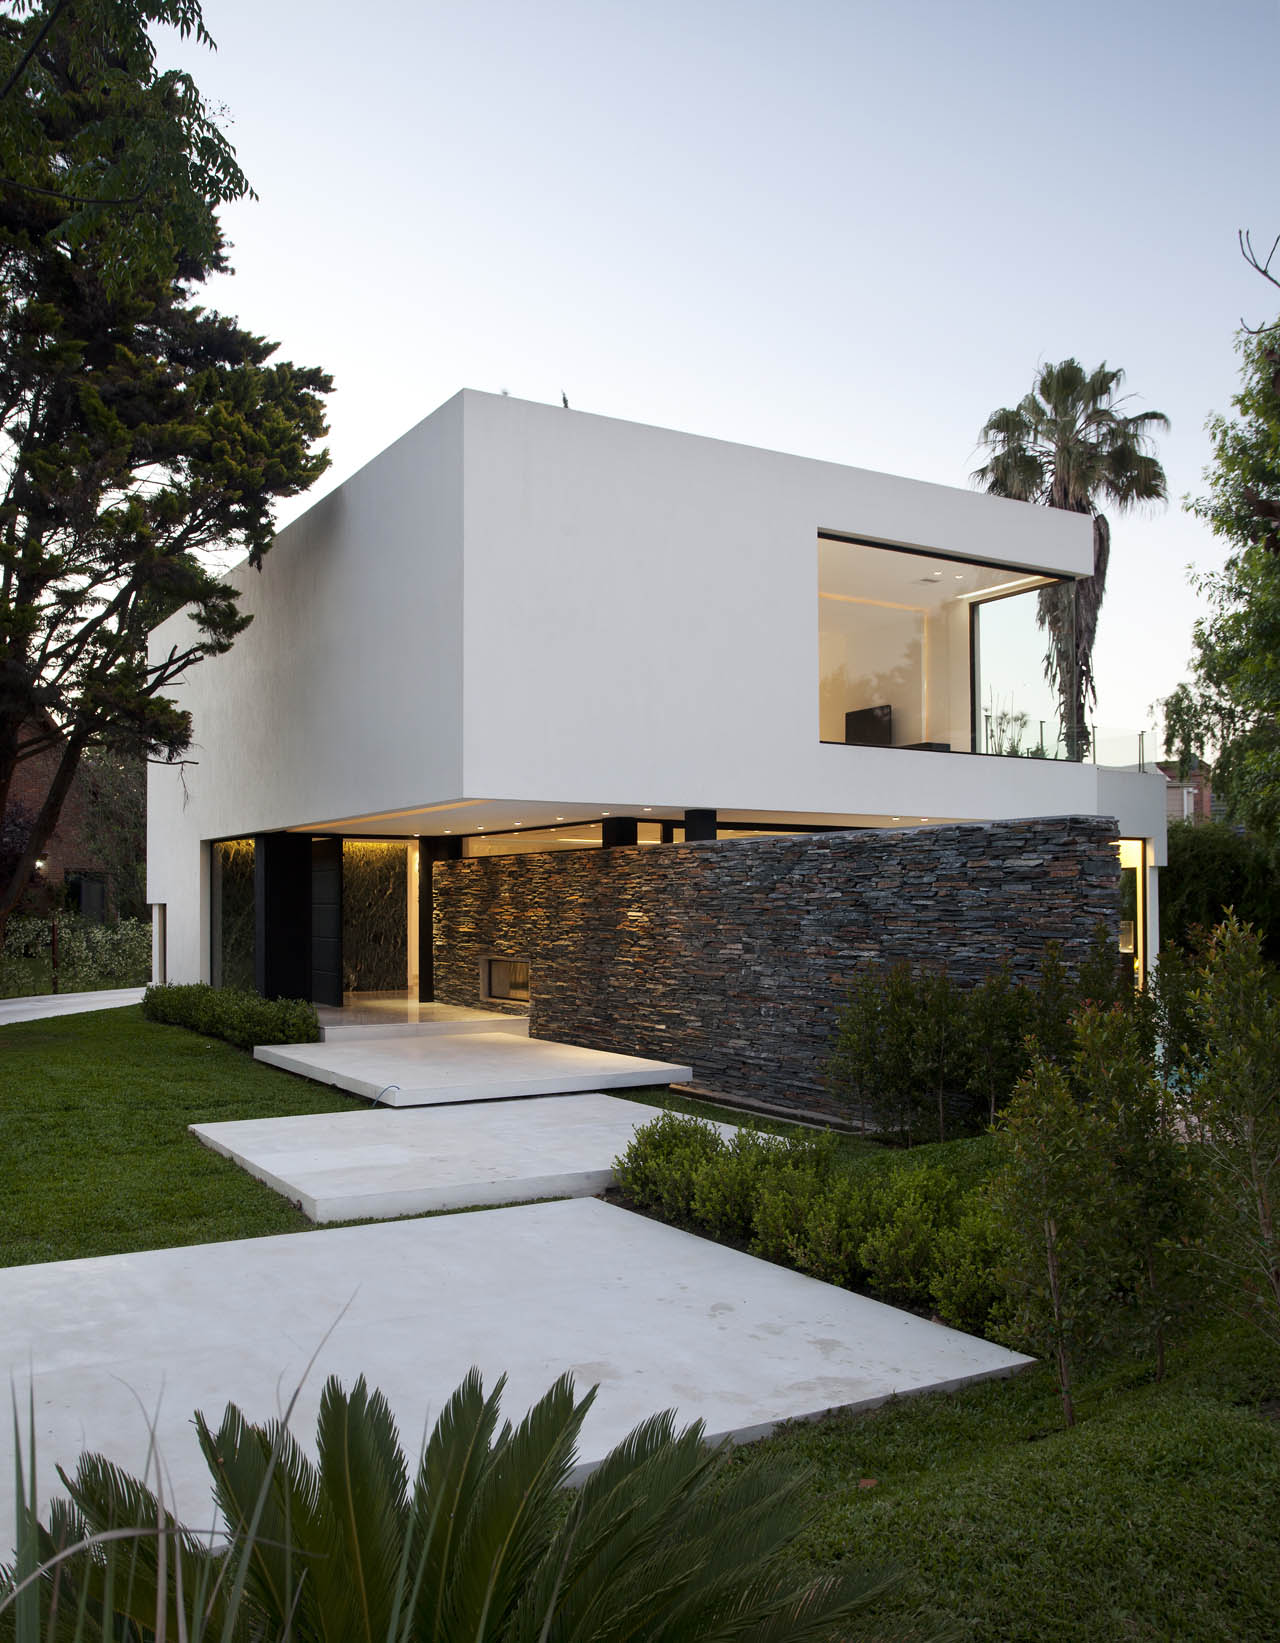 Captivating Architects. Andres Remy Arquitectos Design Inspirations